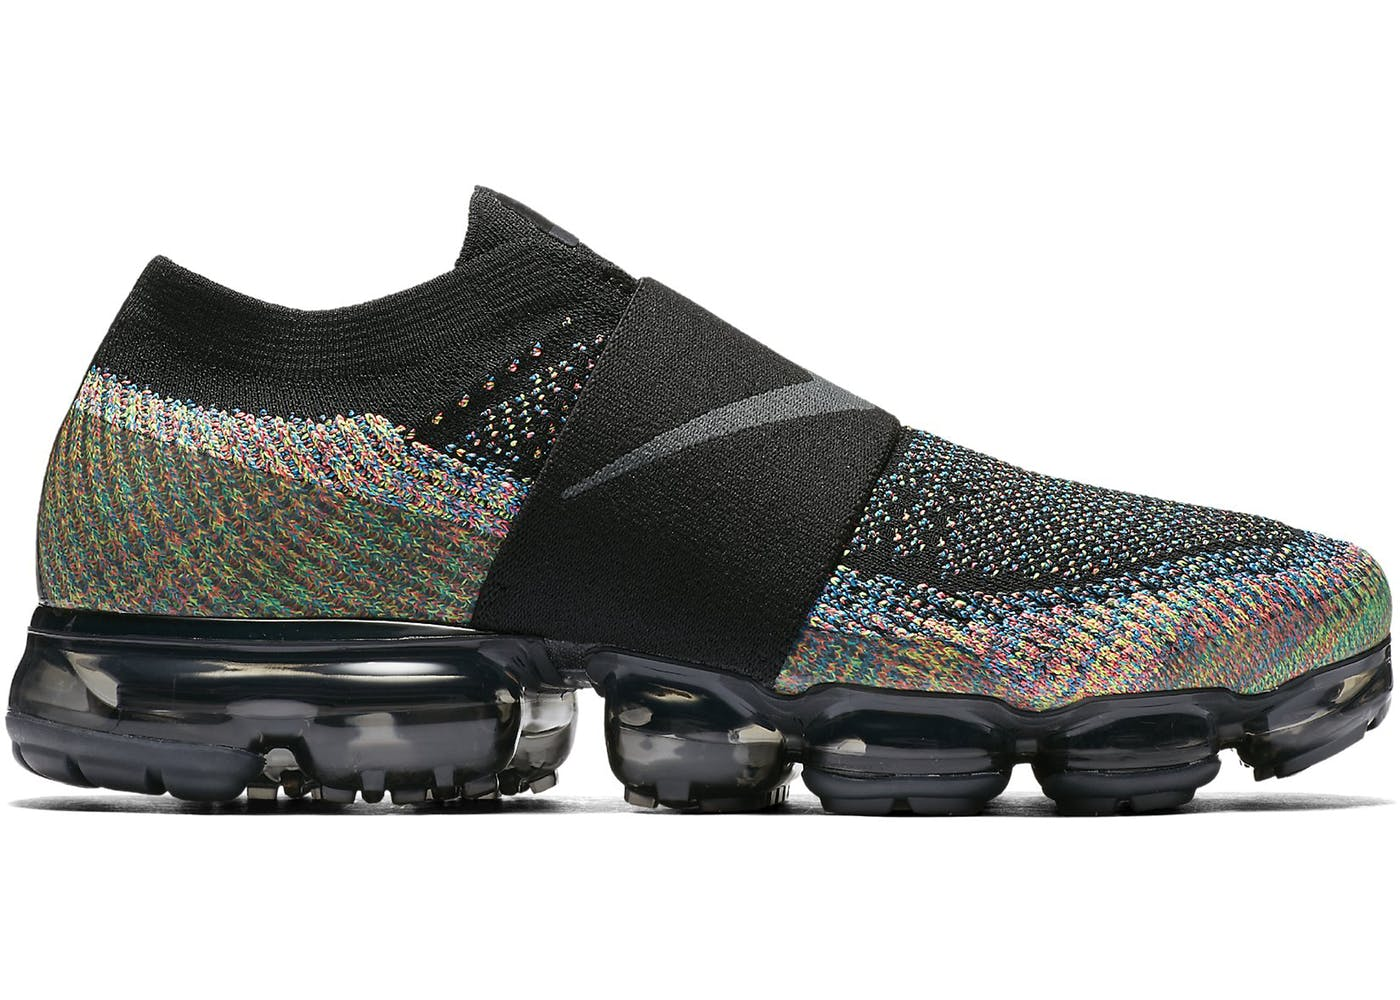 889fdbd466 ... Black Nike Shows Off Upcoming Laceless VaporMax Moc in Air VaporMax Moc  Multi-Color . ...